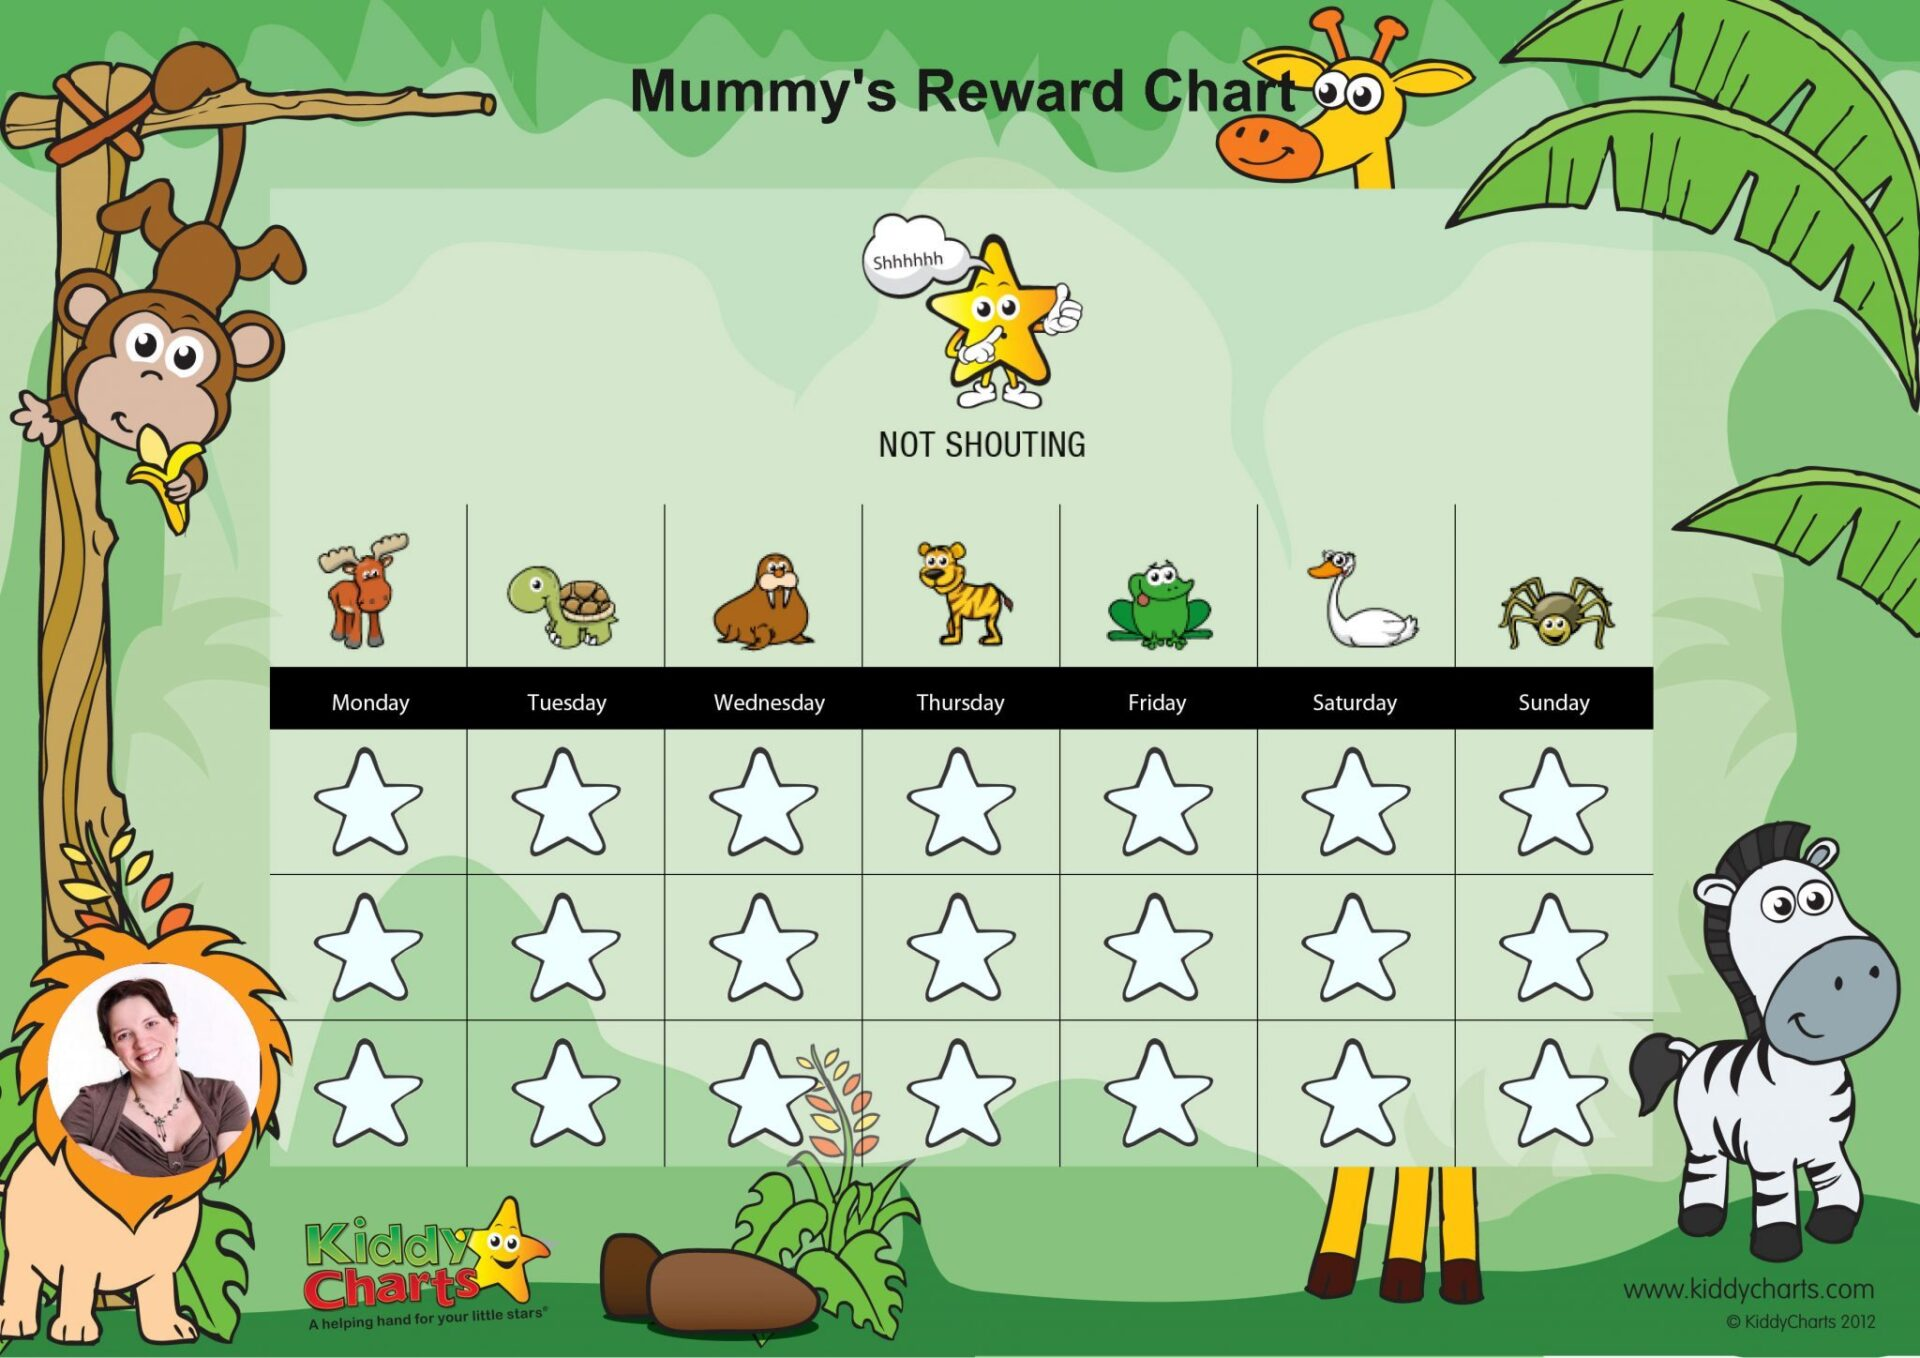 Mummys not shouting at children reward chart